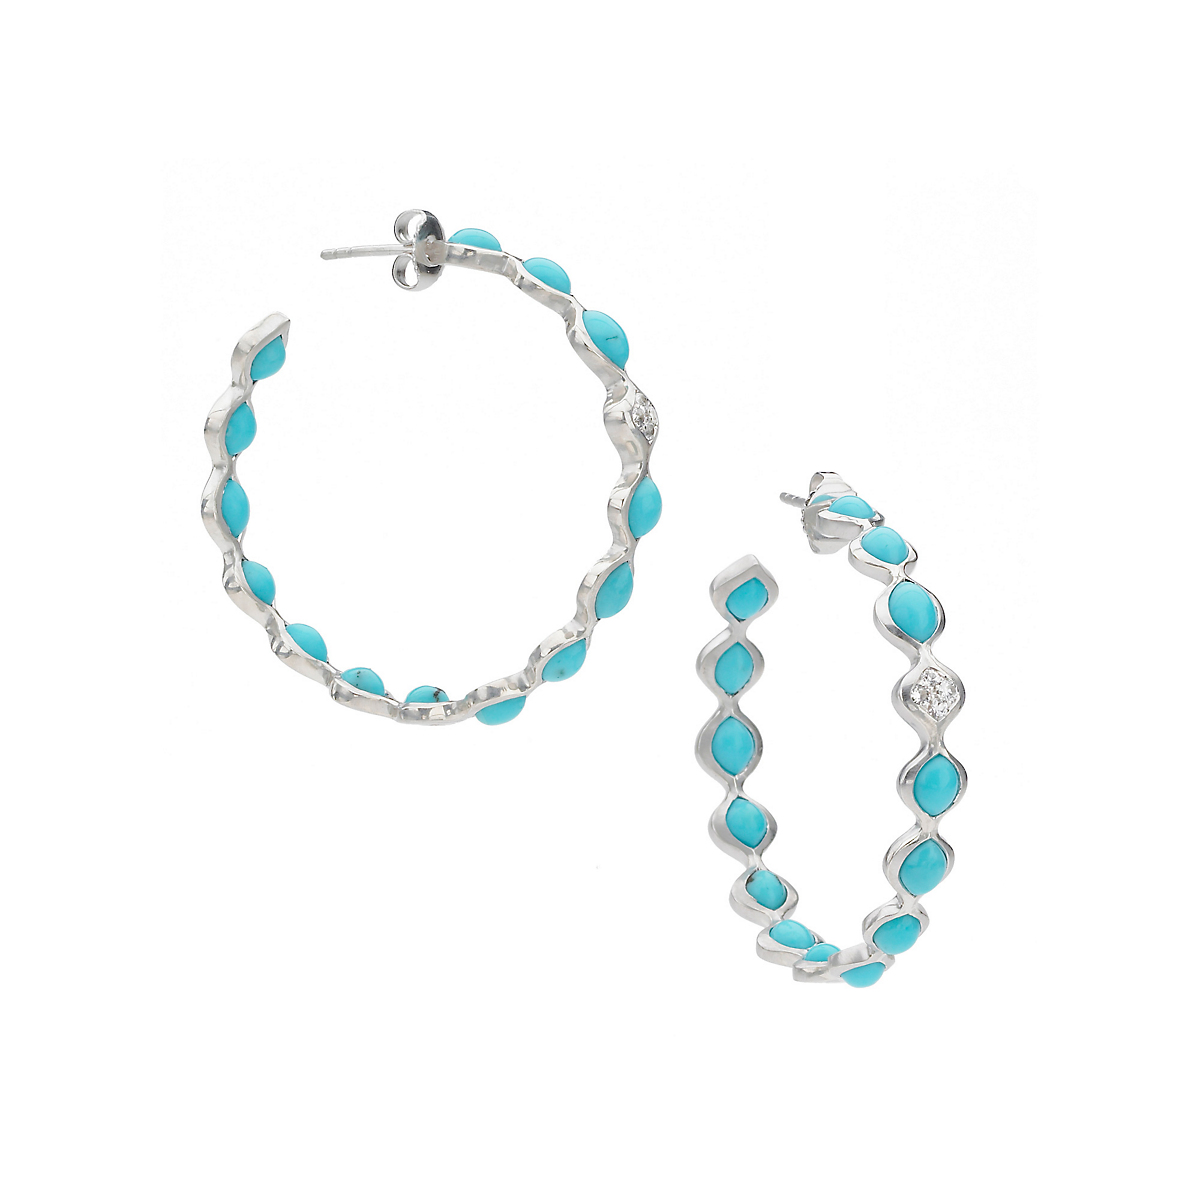 Elizabeth Showers Turquoise & White Sapphire Simone Hoop Earrings